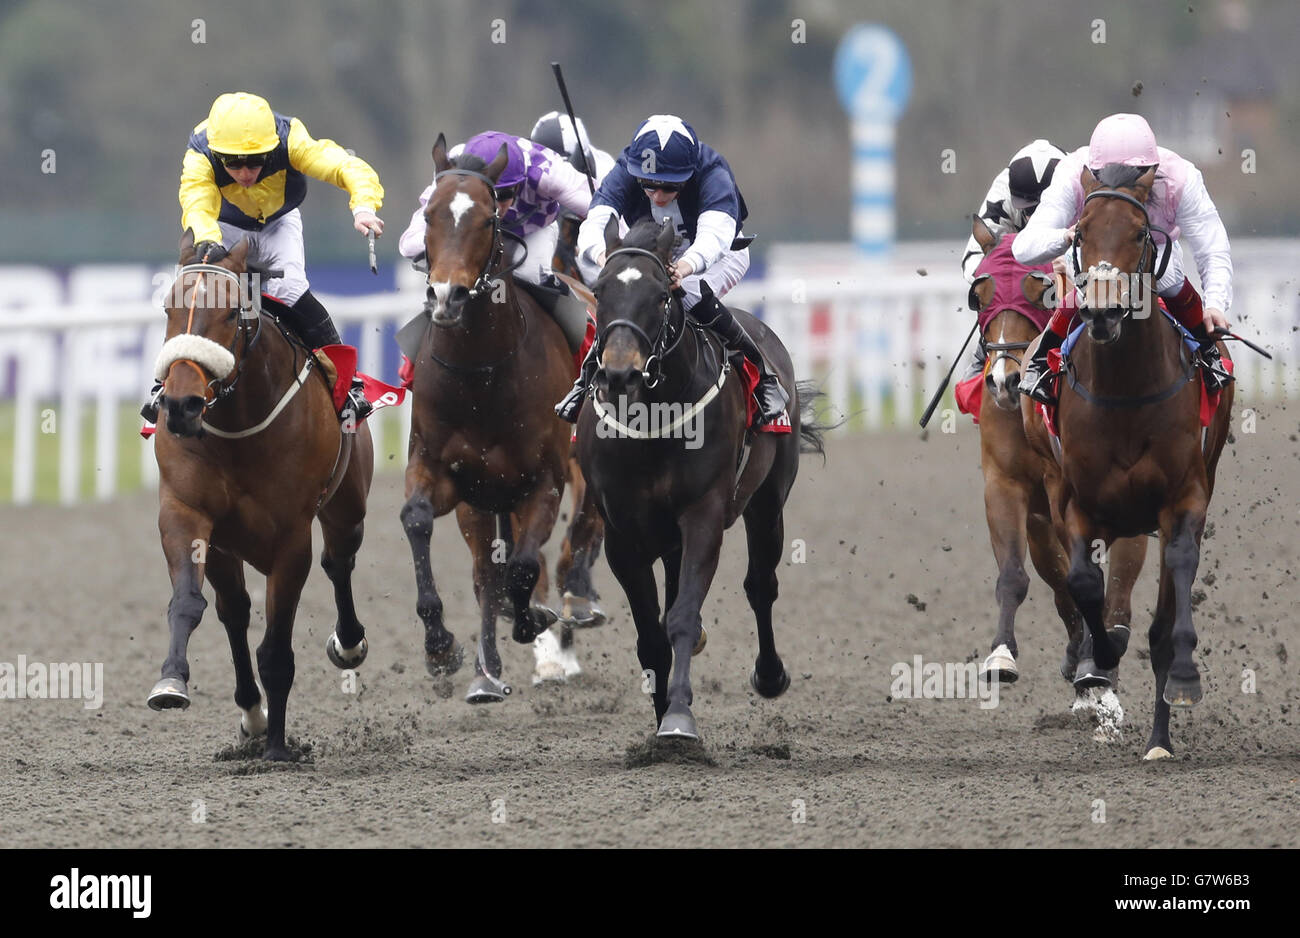 Horse racing easter family fun day kempton racecourse stock horse racing easter family fun day kempton racecourse negle Image collections